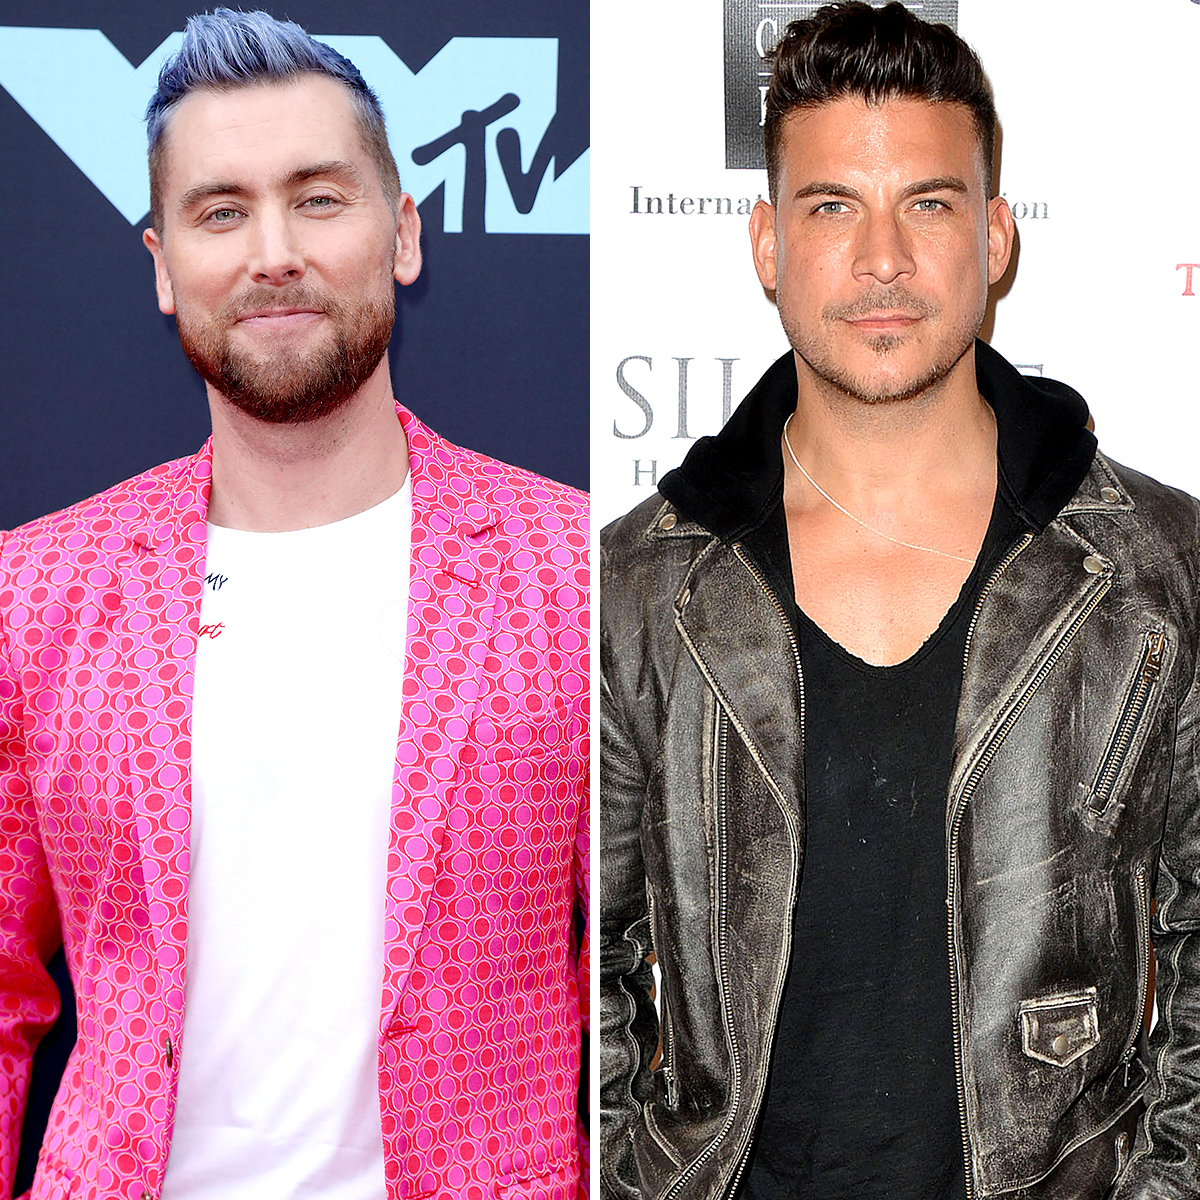 Lance Bass Thinks Bravo Will Fire Jax Taylor Over Racist Comments